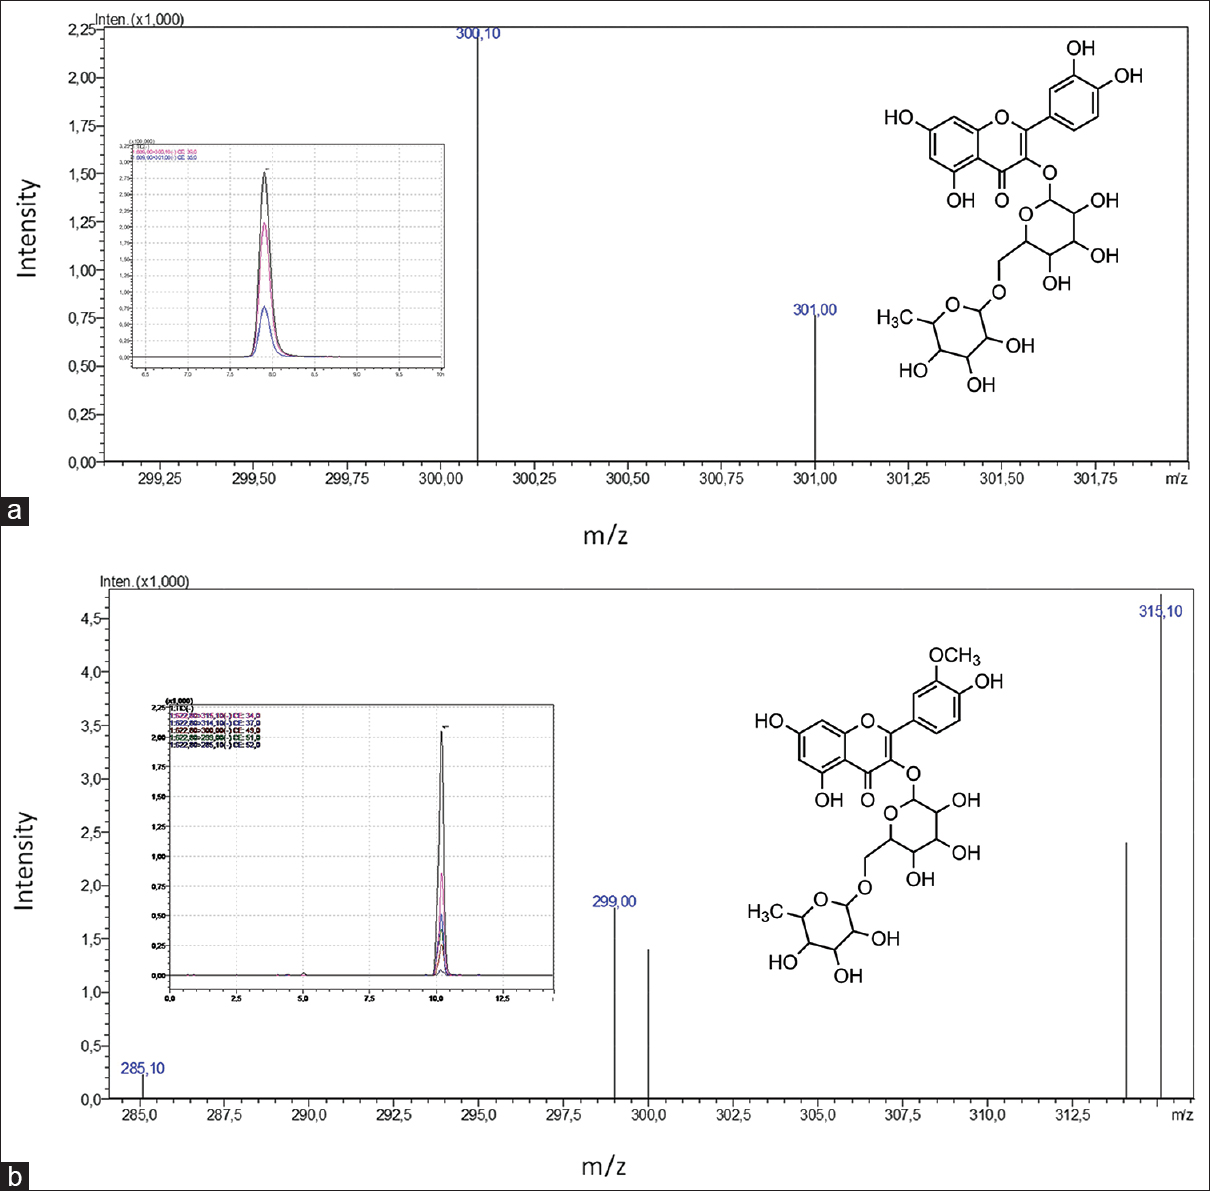 Figure 8: Liquid chromatography-mass spectrometry/mass spectrometry chromatogram and mass spectra of rutin (a) and isorhamnetin 3-O rutinoside (b)